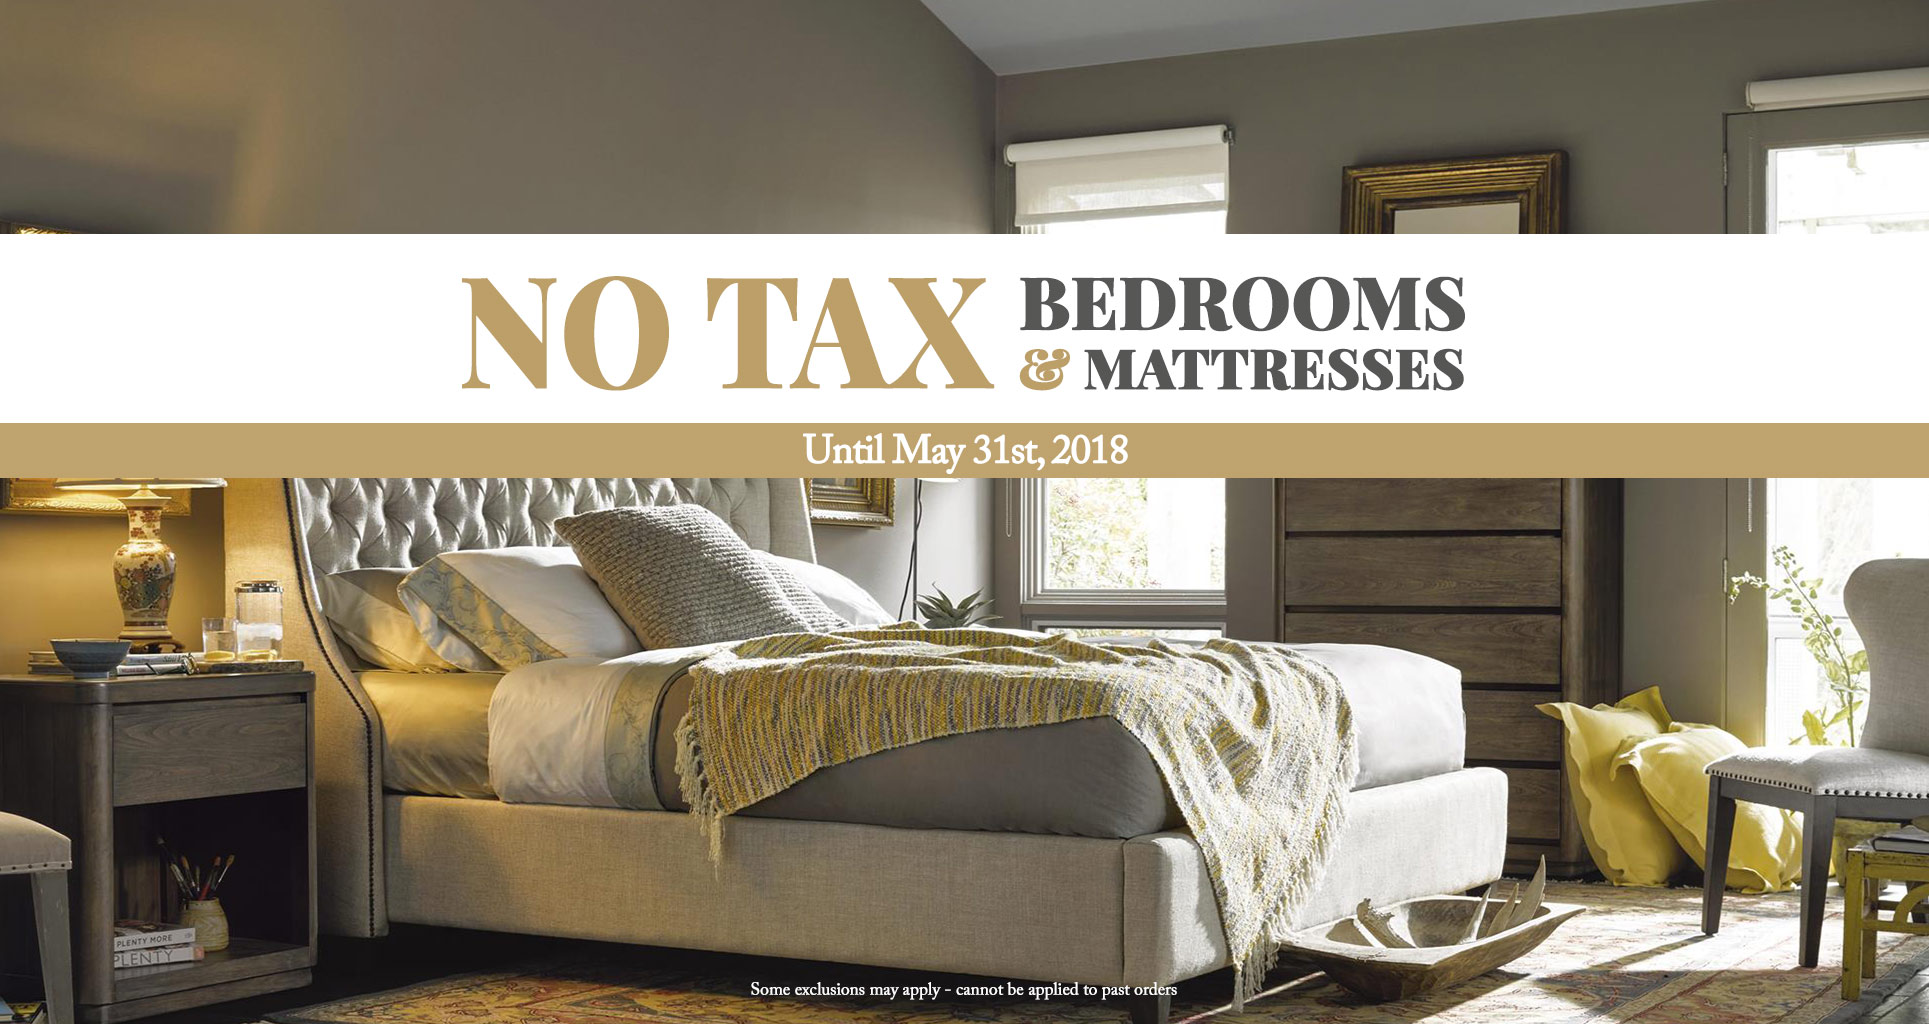 No Tax Sale Bedroom Mattresses Coulters Furniture 2018 Home